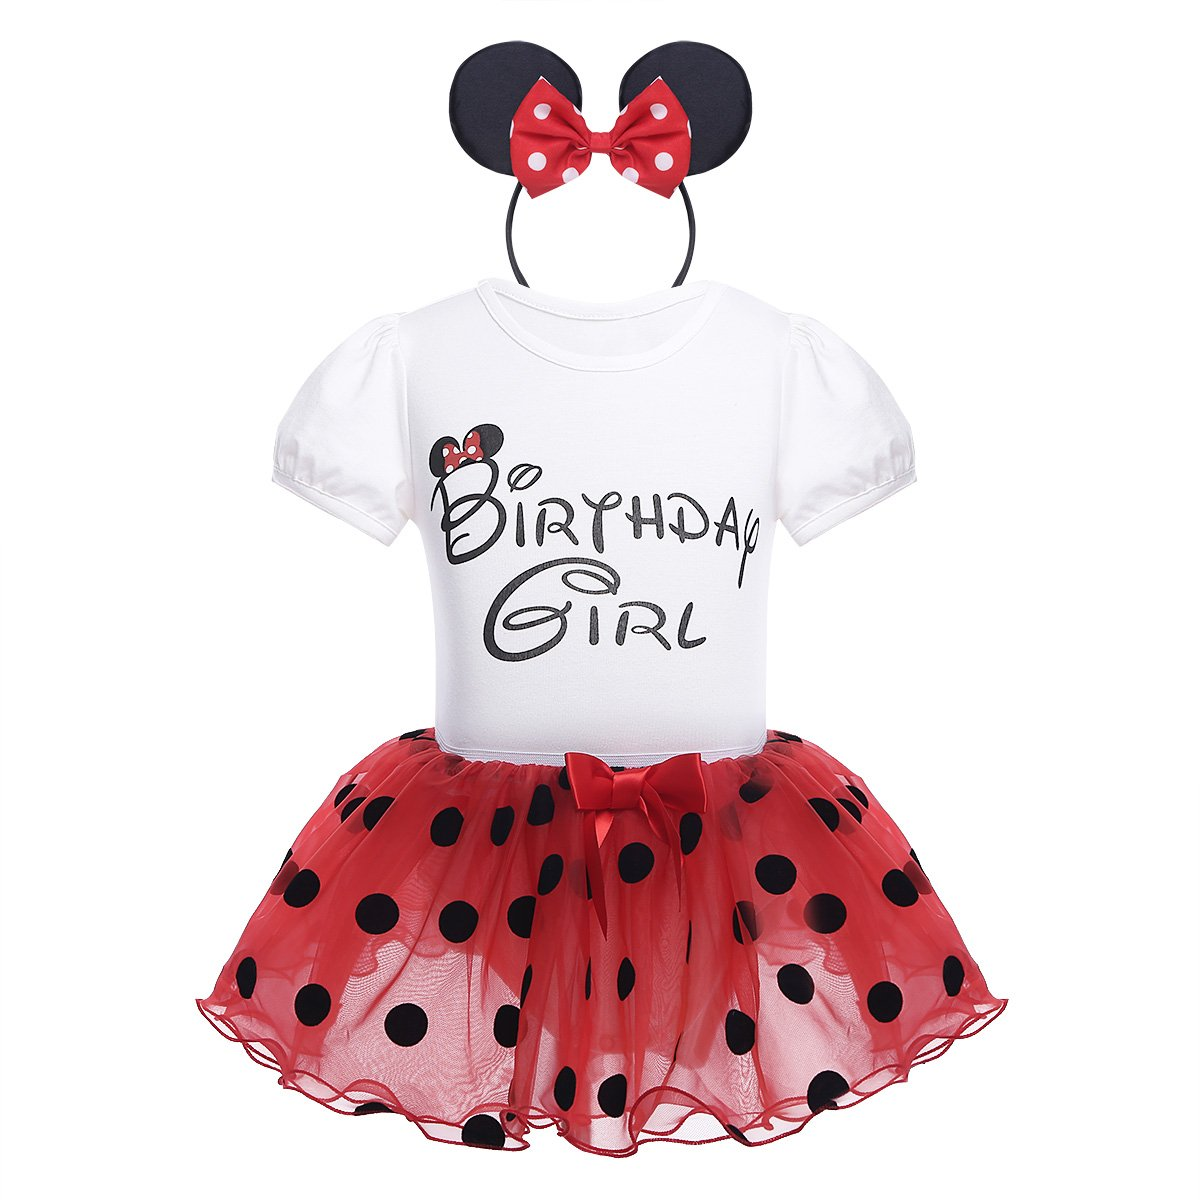 CHICTRY Baby Girls Kids Birthday Party Outfit Cartoon Cosplay Short Sleeve Romper with Tutu Skirt Headband Set